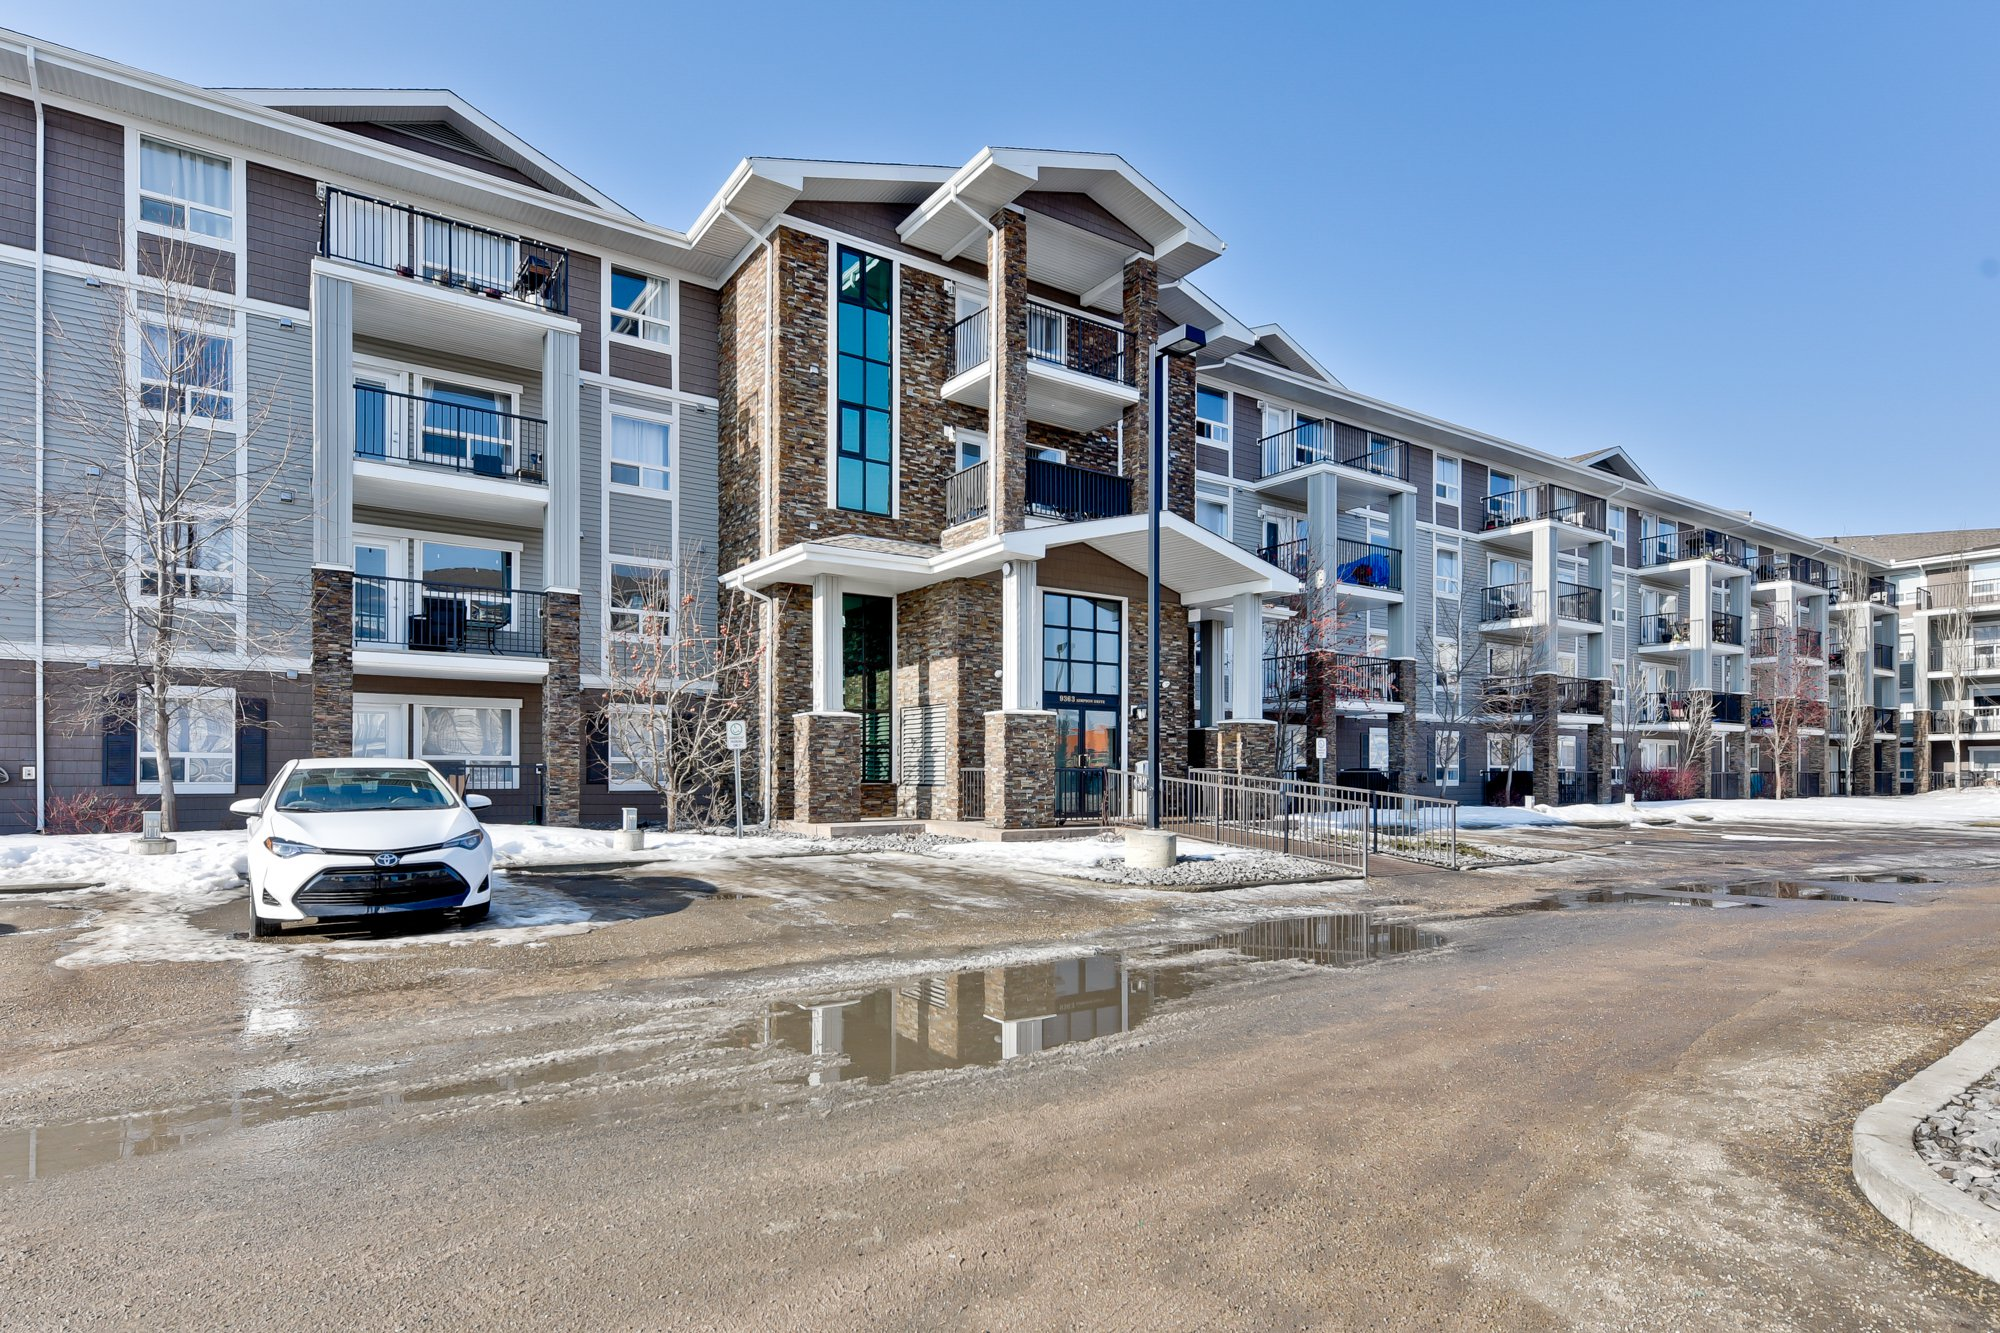 Main Photo: 1422 9363 Simpson Drive in Edmonton: South Terwillegar Condo for sale : MLS®# E4148861